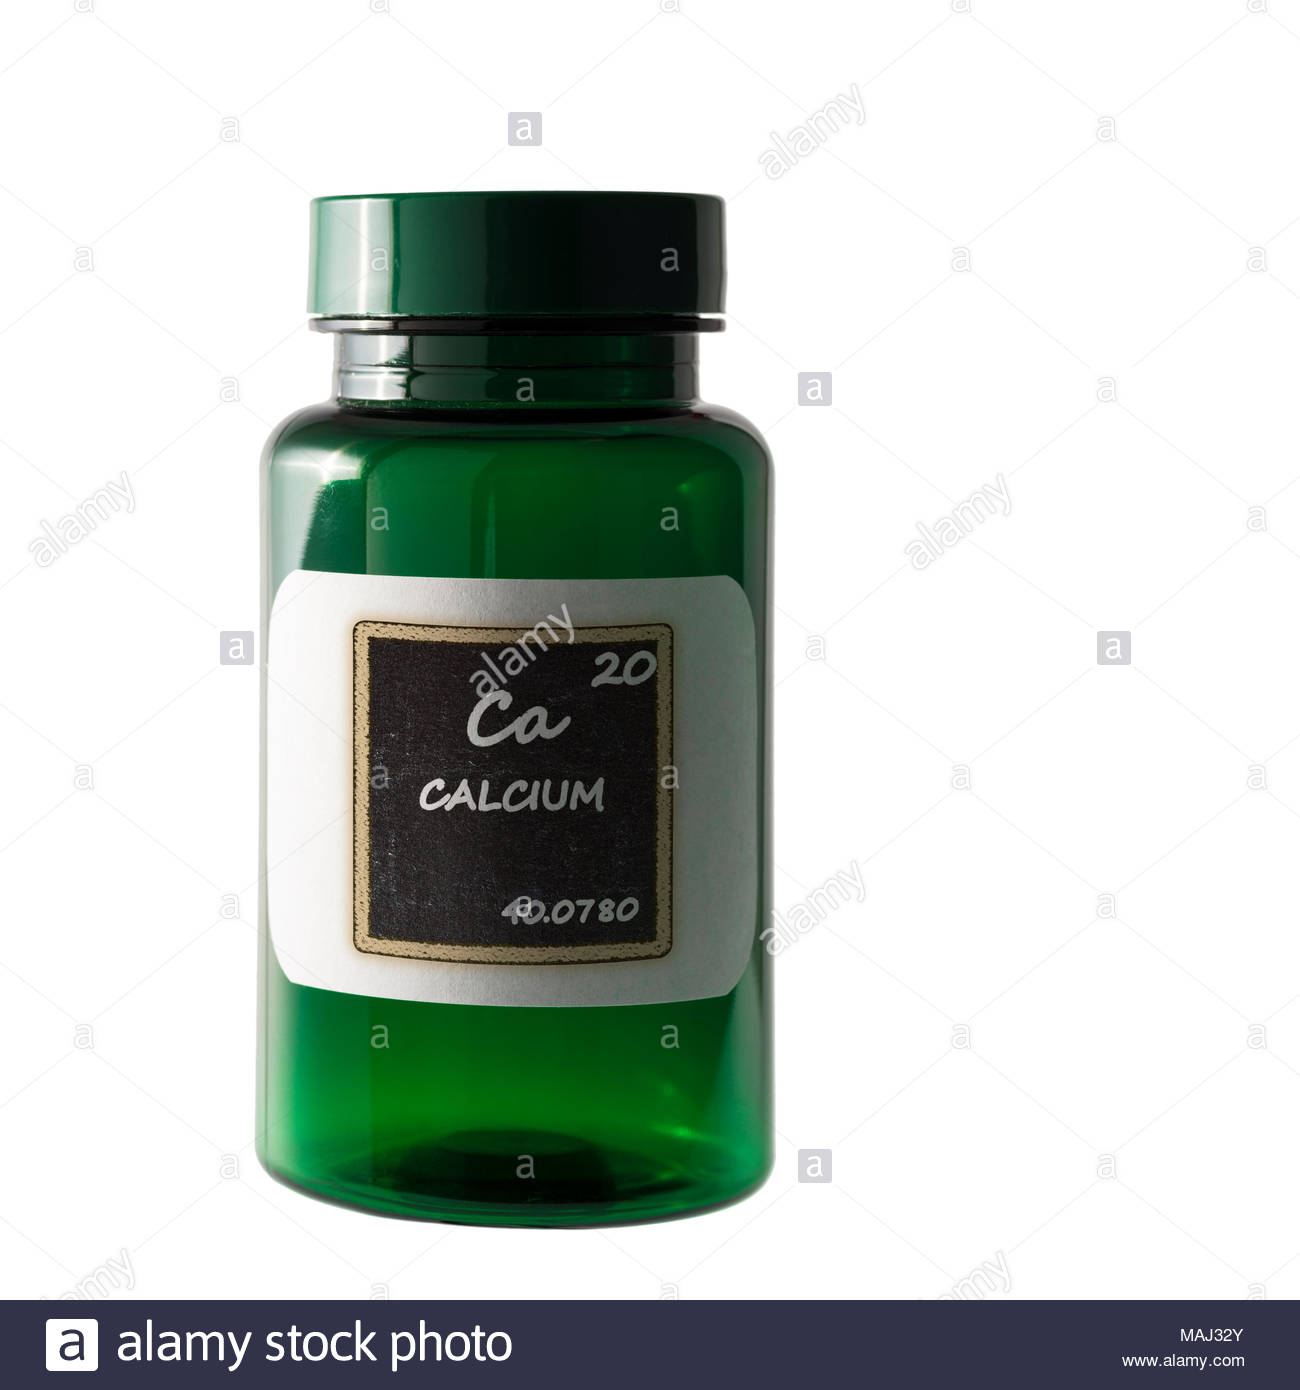 Calcium Periodic Table Details Shown On Bottle Label Stock Photo